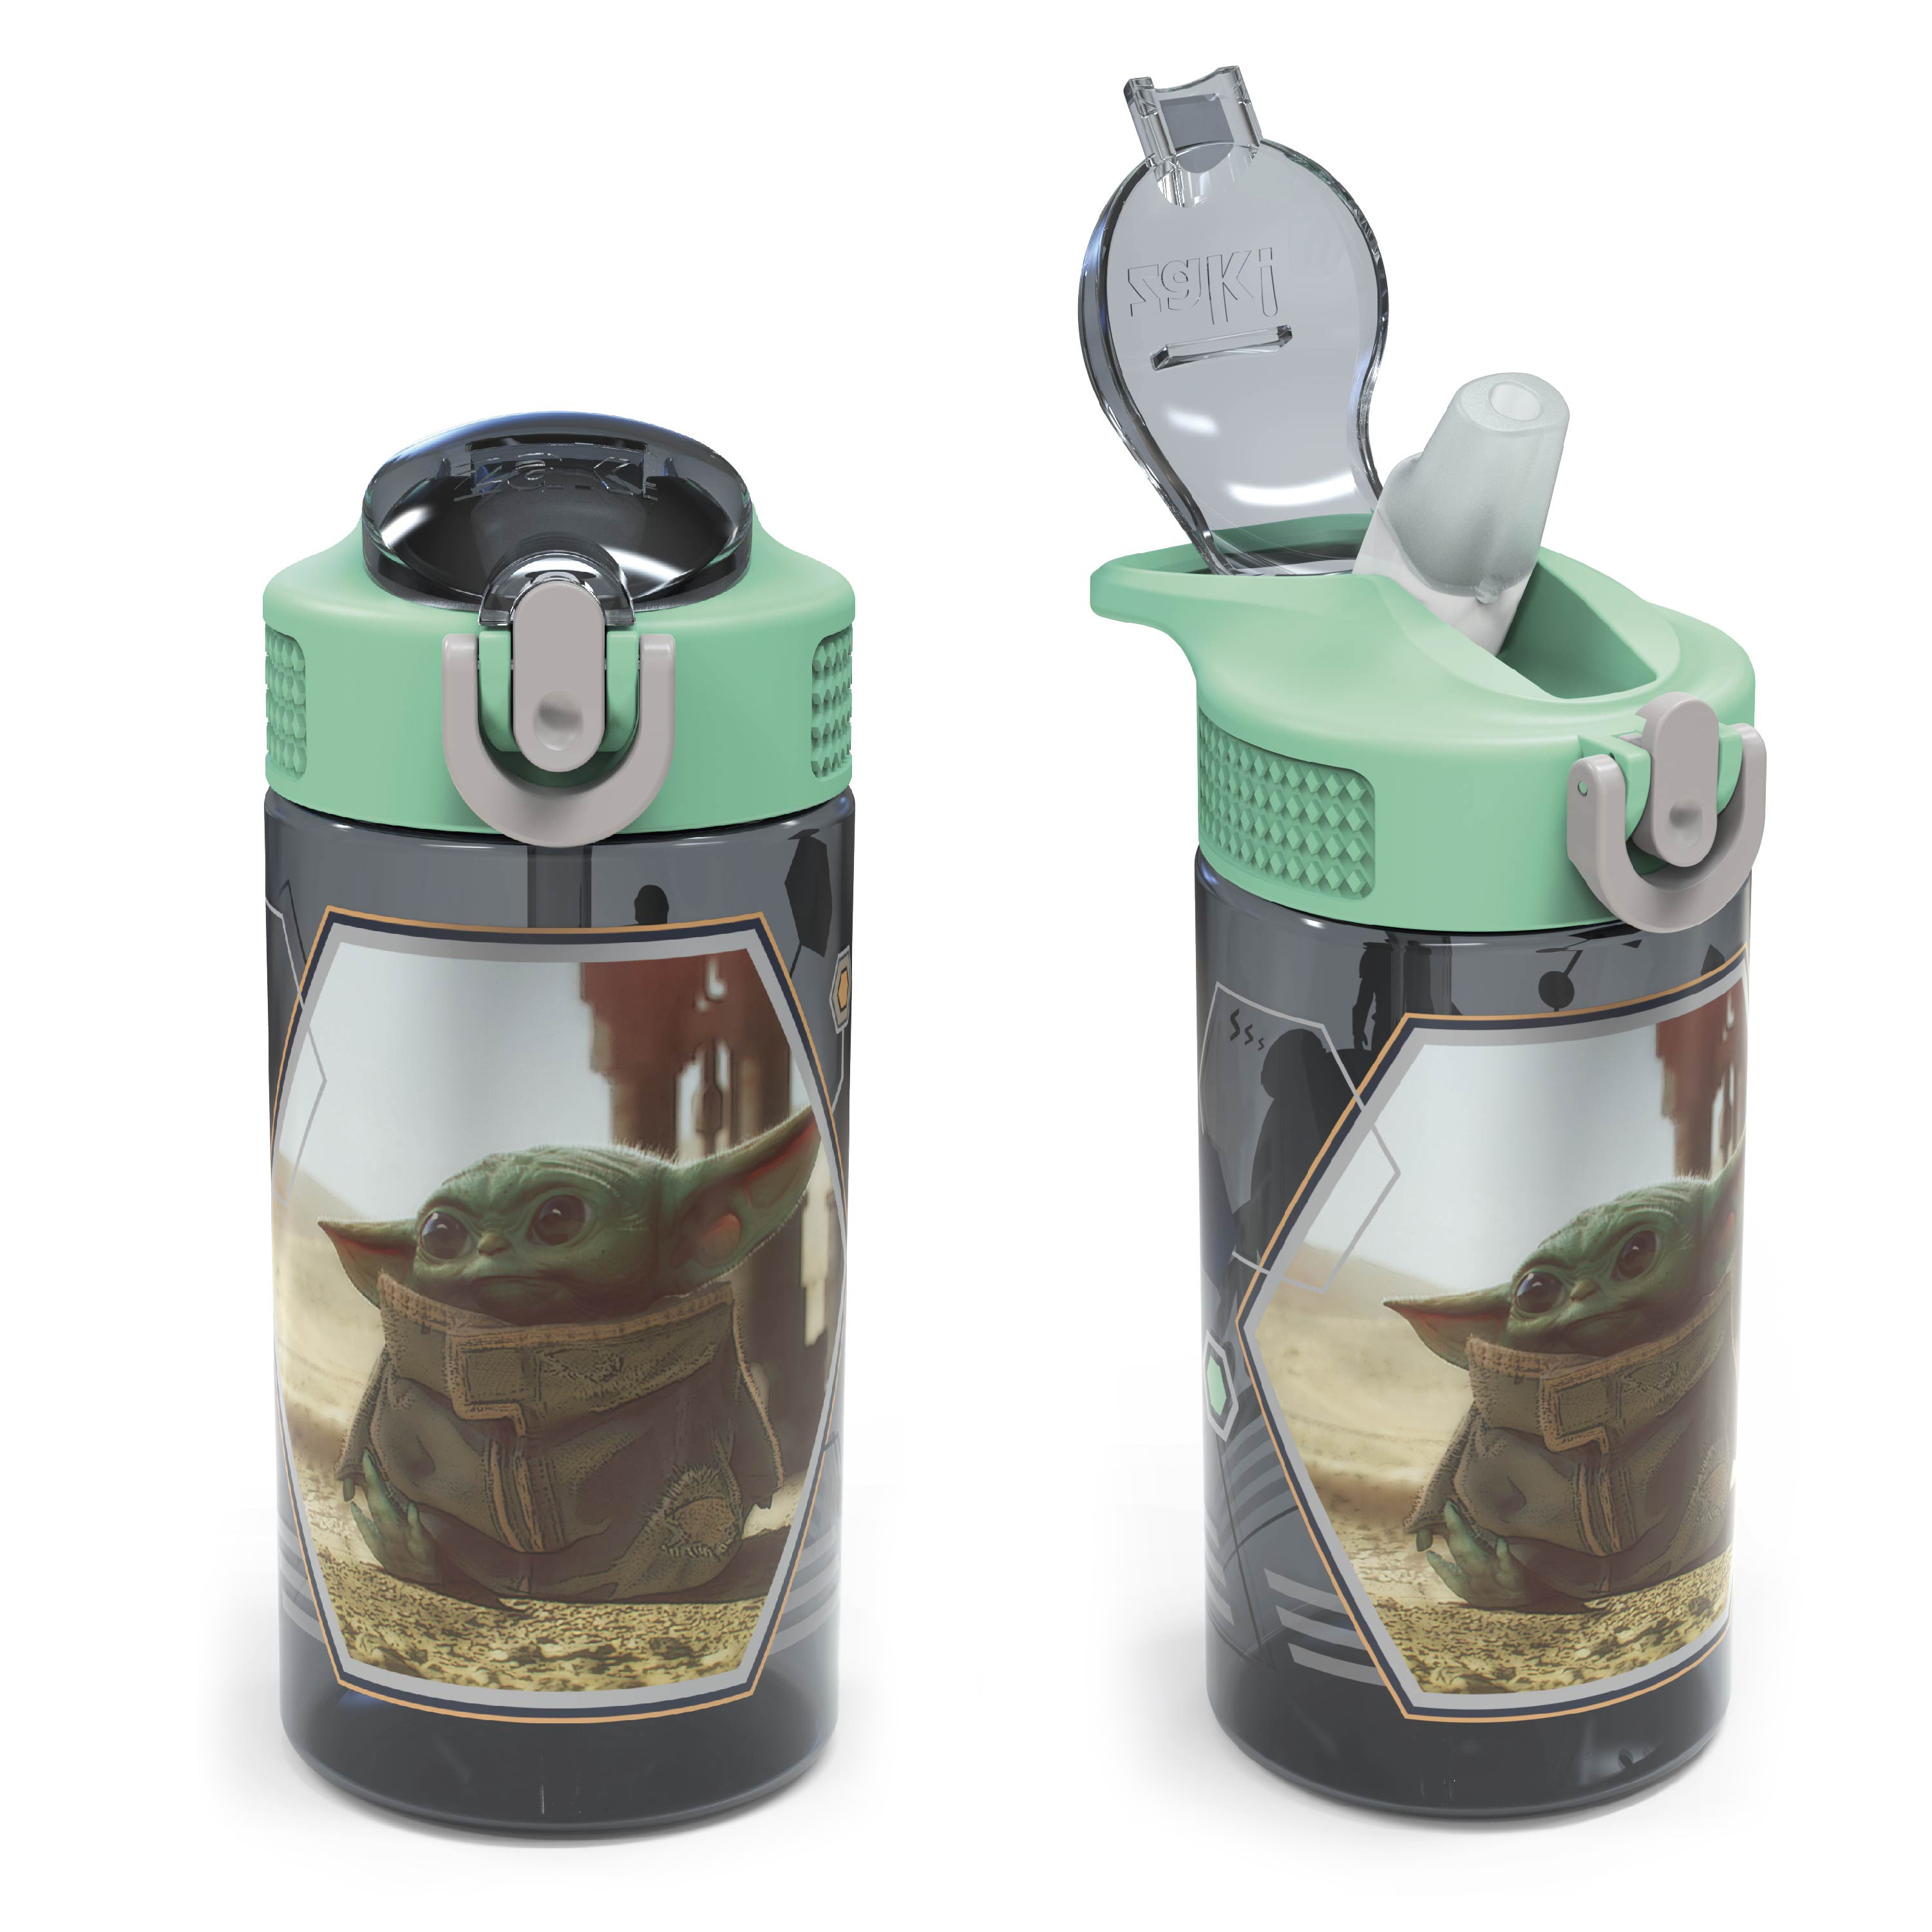 Star Wars: The Mandalorian 16 ounce Water Bottle, The Child slideshow image 8